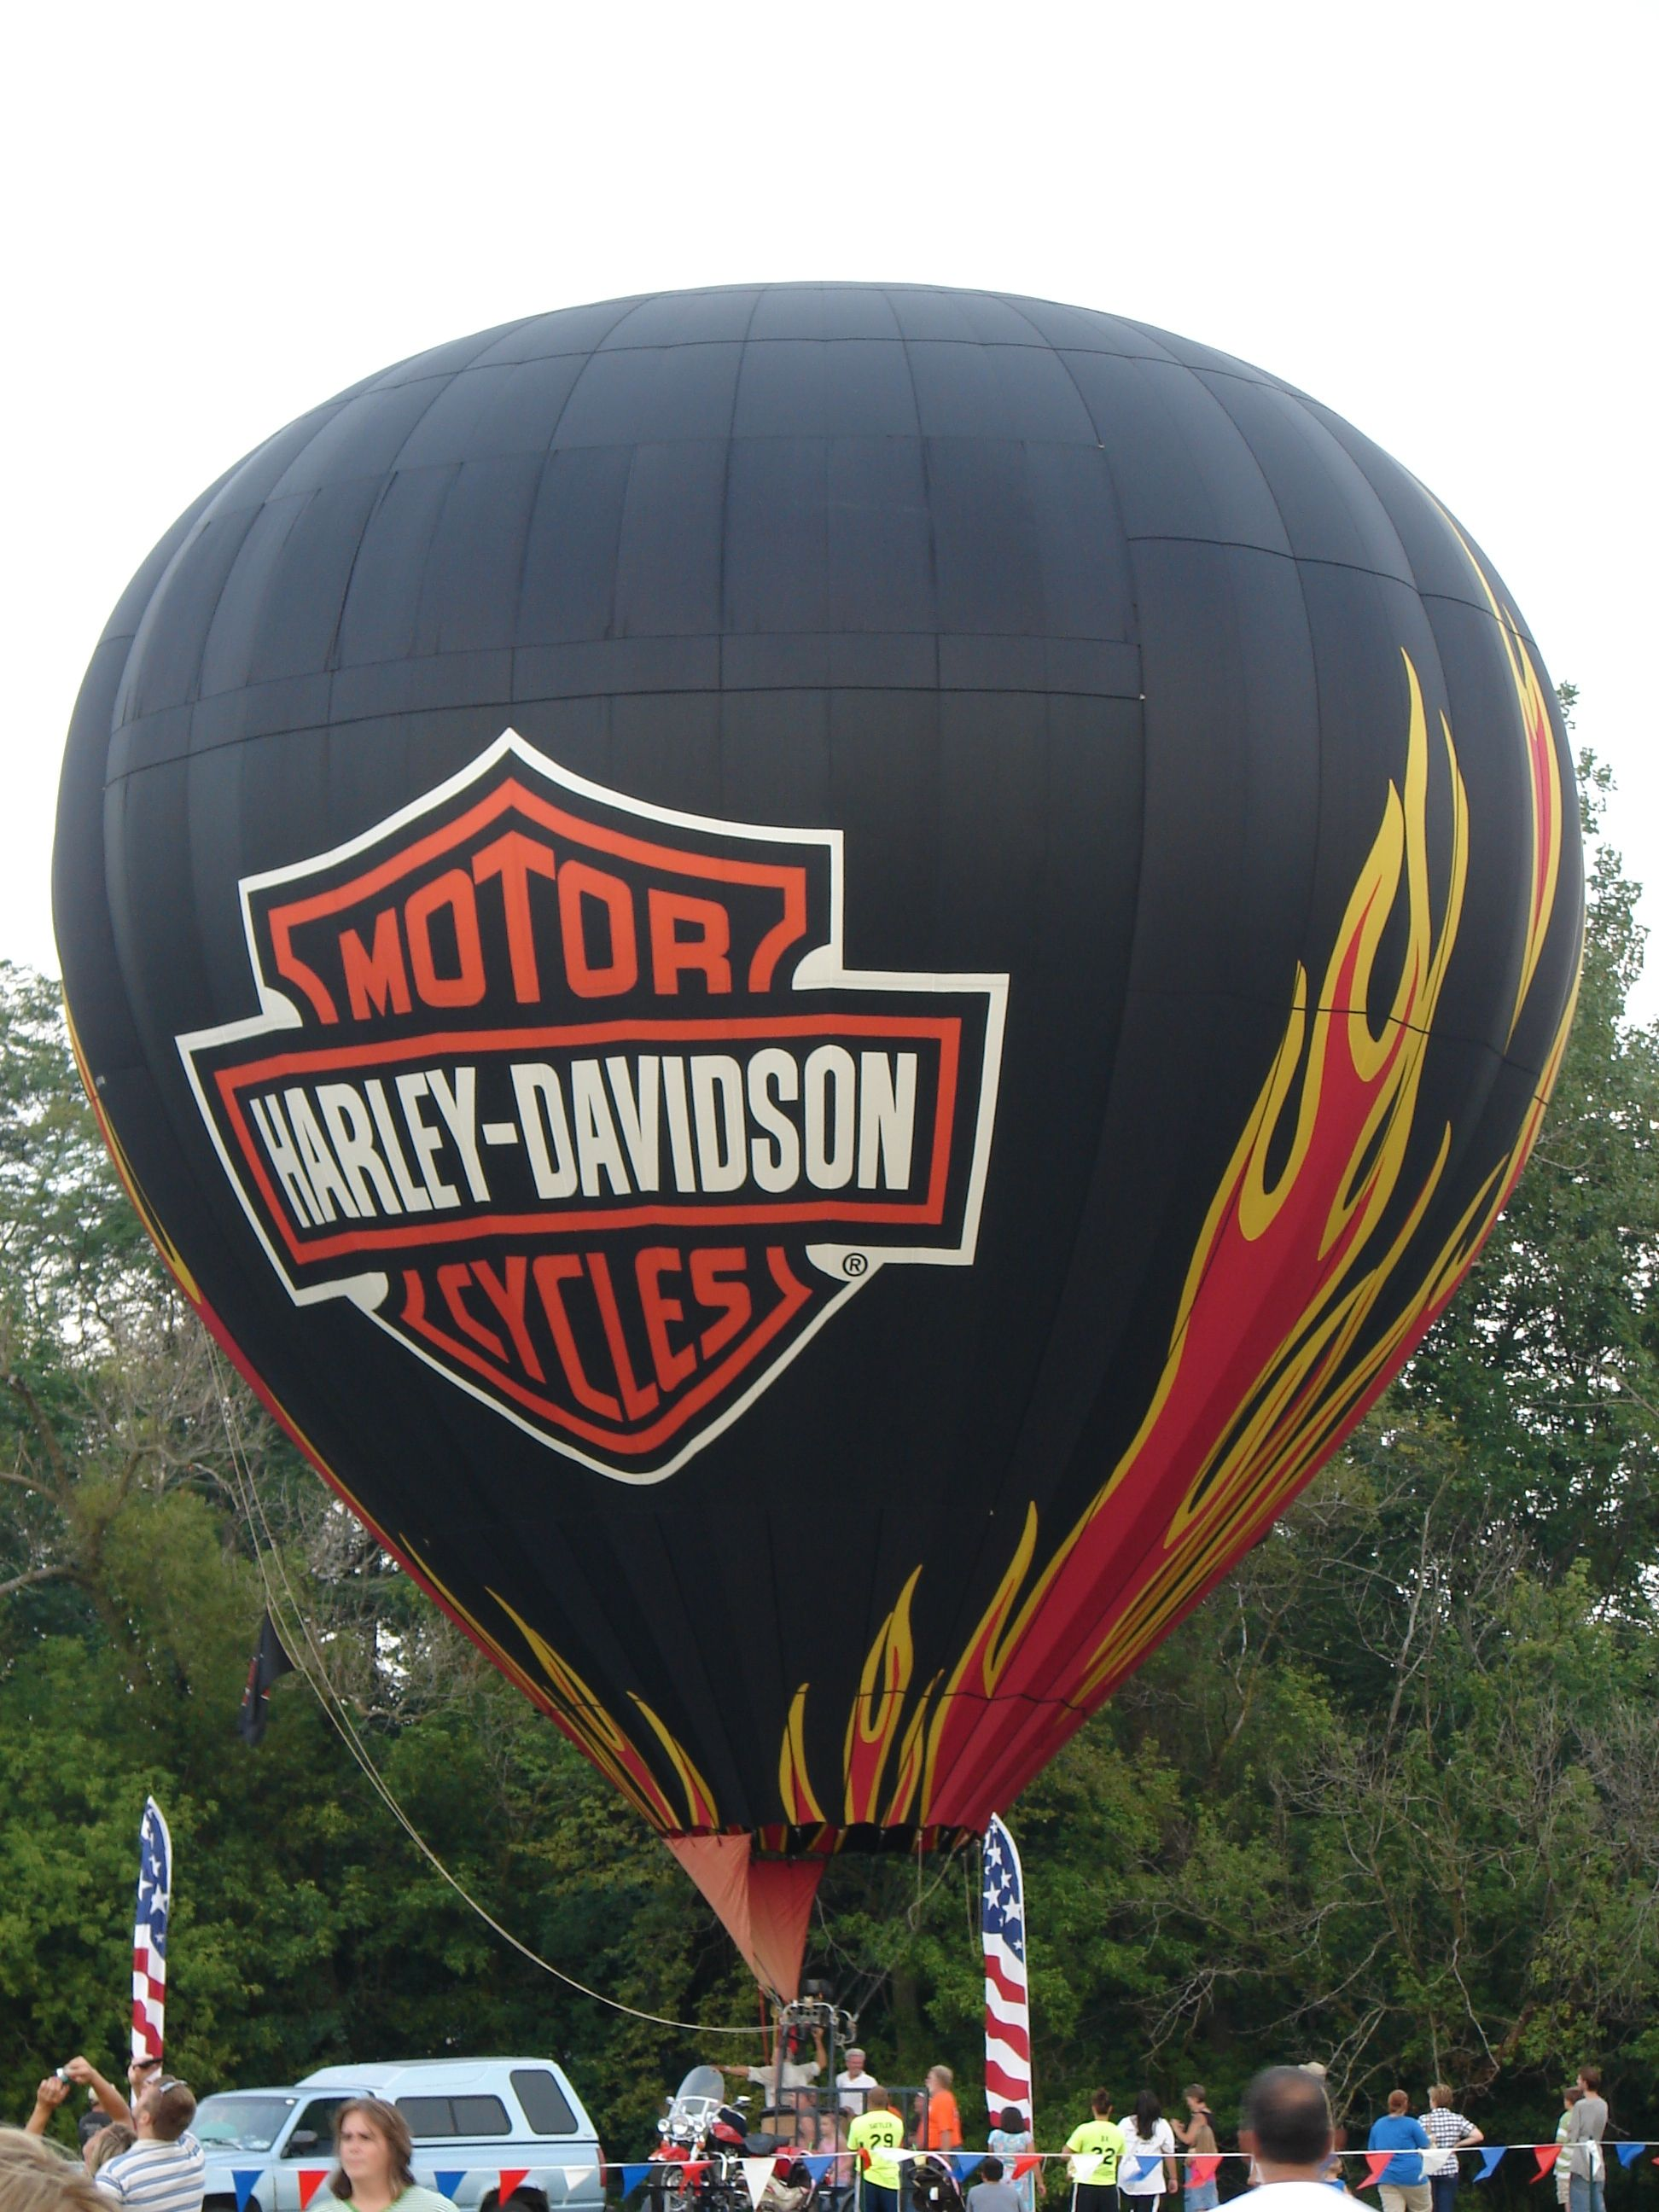 Balloon Fest, Findlay, Ohio My stomping grounds